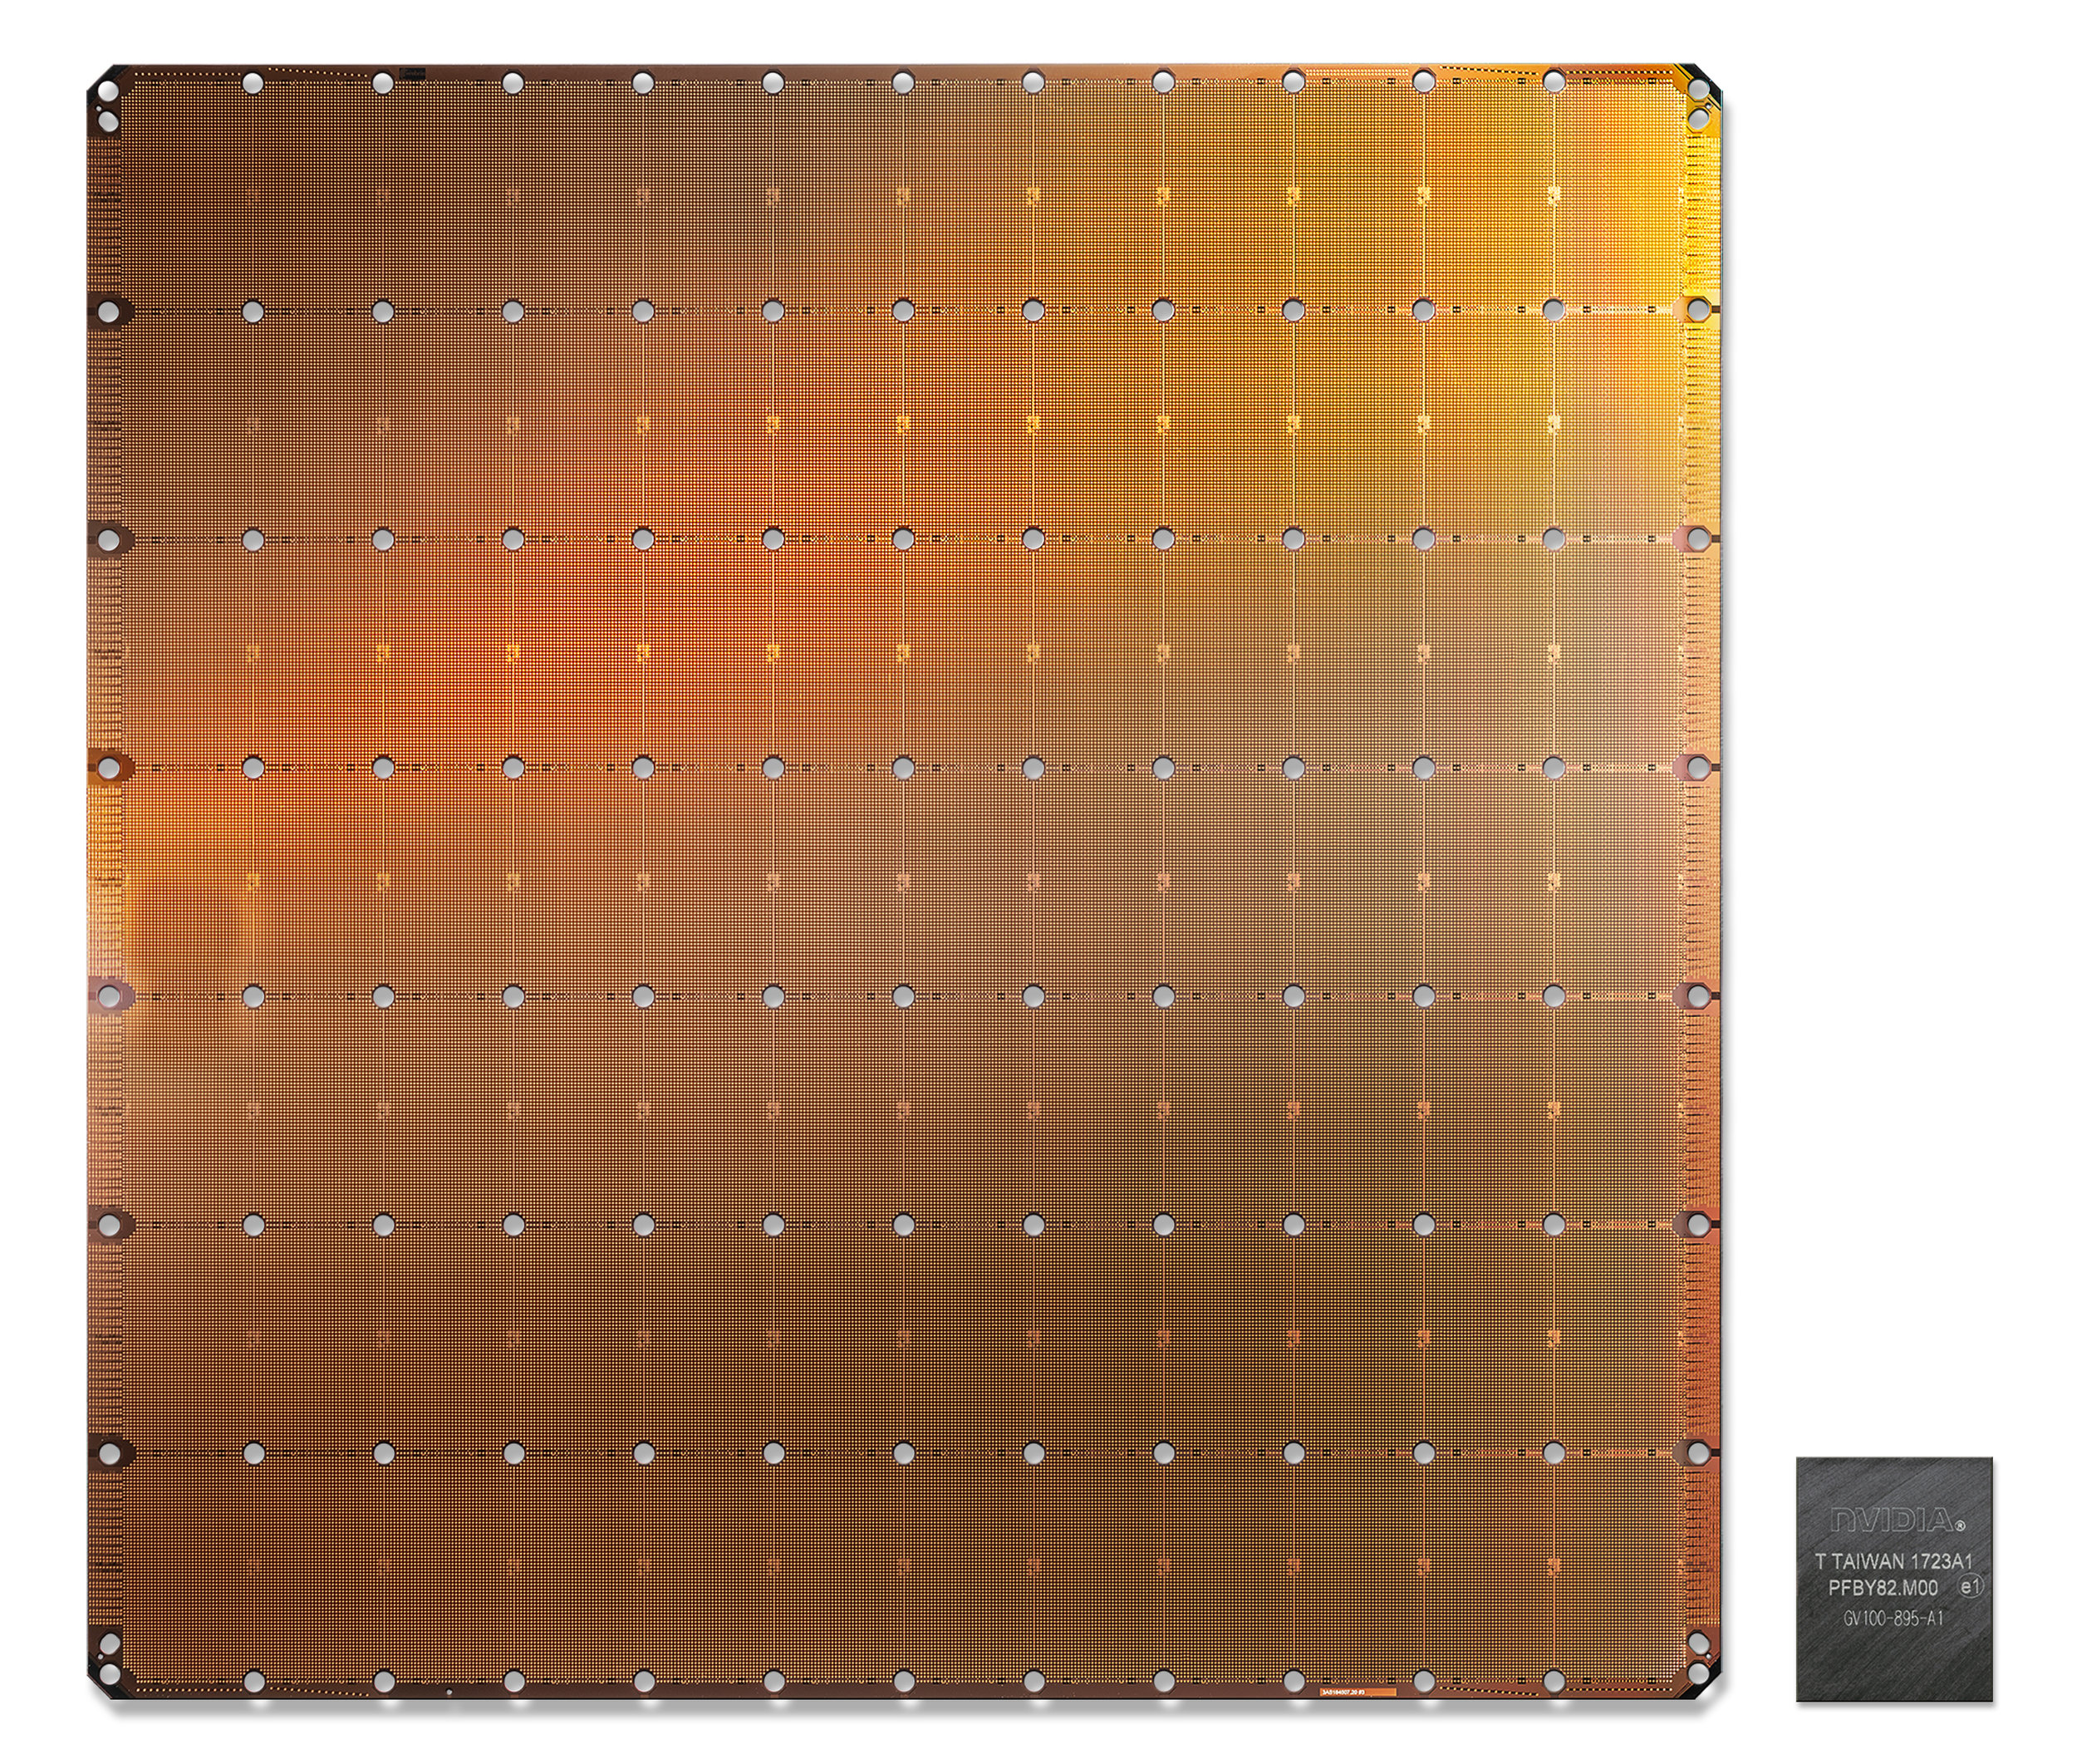 Cerebras Wafer-Scale Engine in comparison to the largest AI chip.